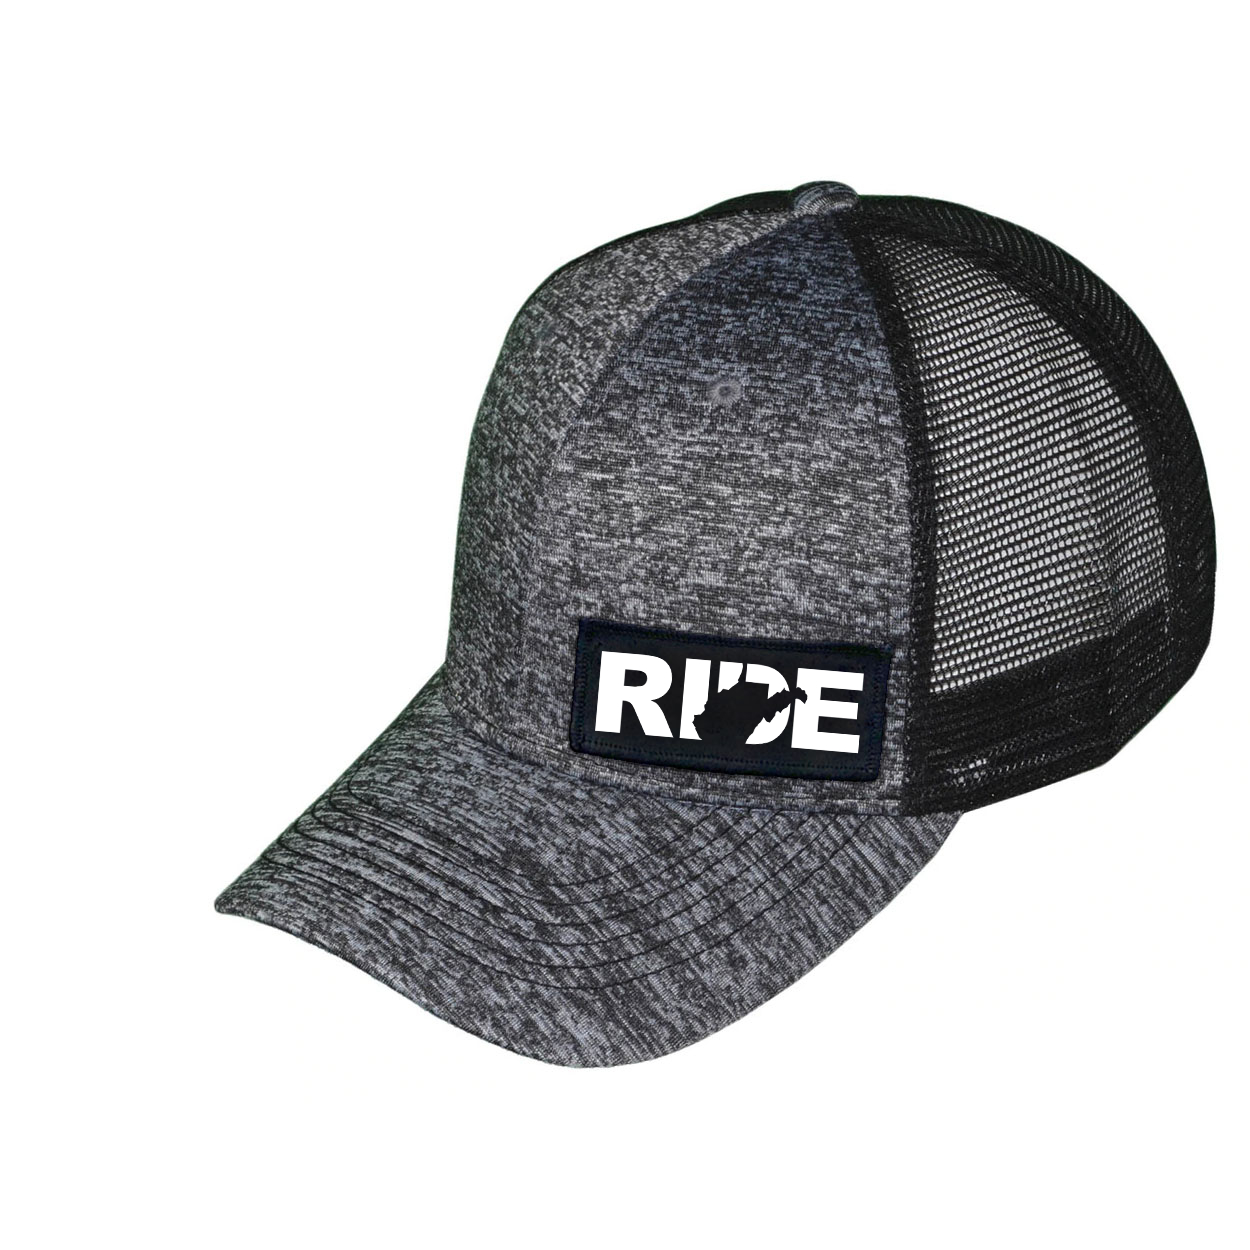 Ride West Virginia Night Out Woven Patch Melange Snapback Trucker Hat Gray/Black (White Logo)